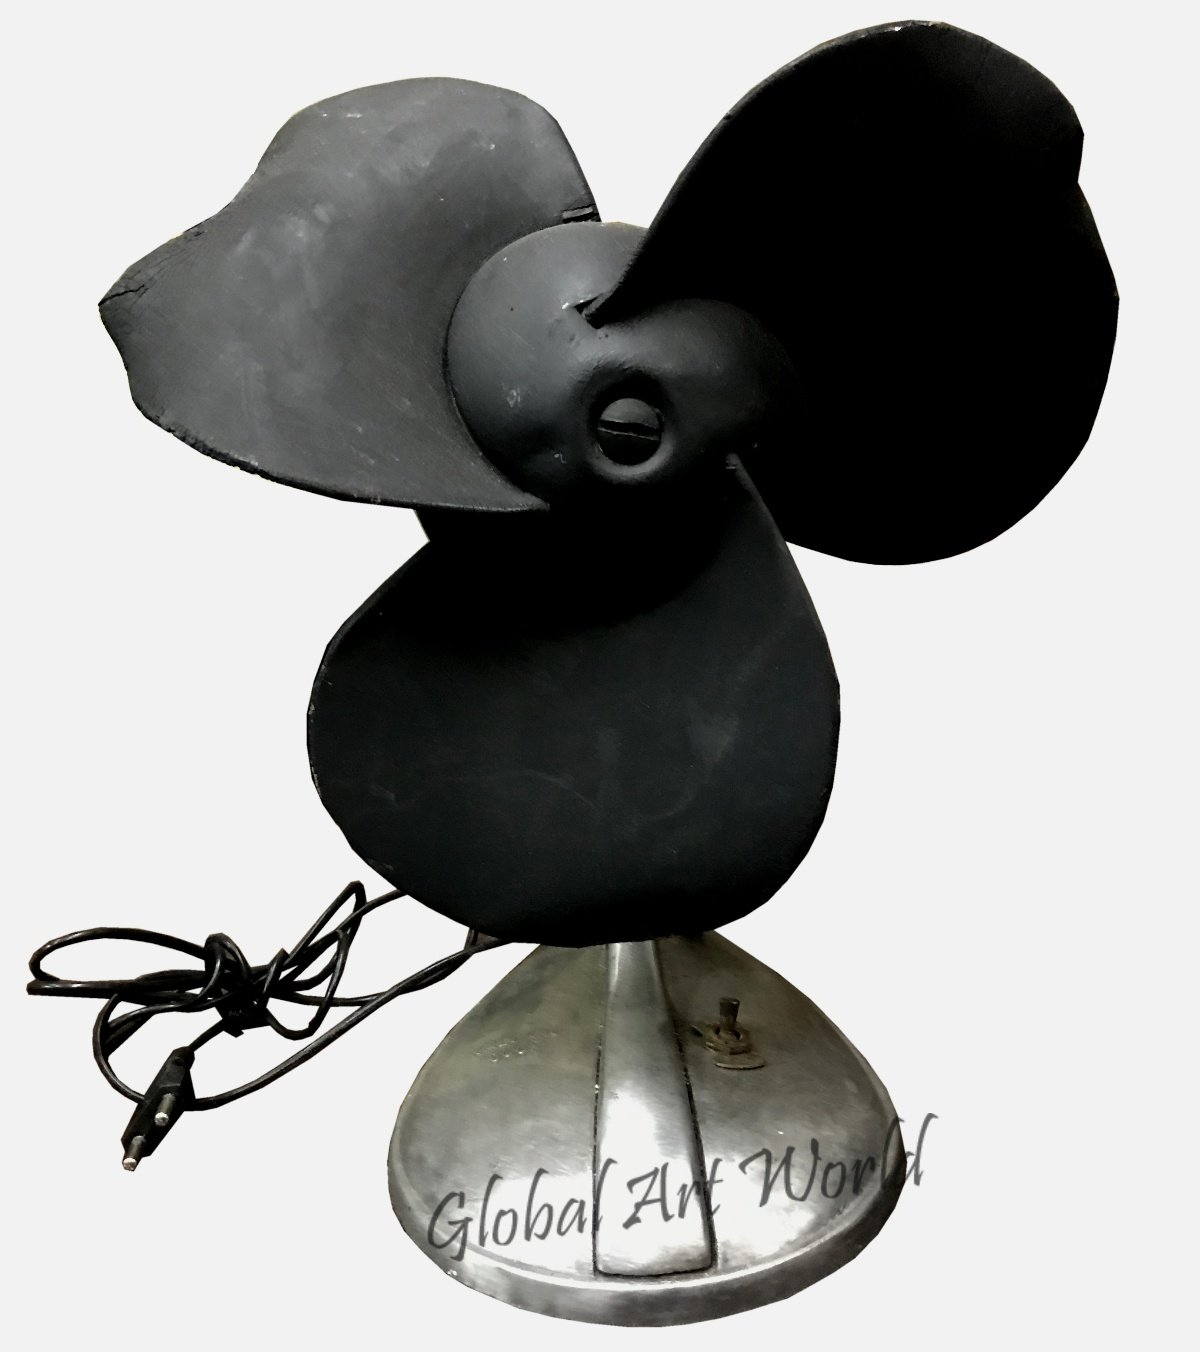 Global Art World Old Antique Electric Osolating Three Black Ship Blades Shaped Rare Vintage Table Top And Desk Electric Fans HB 0159